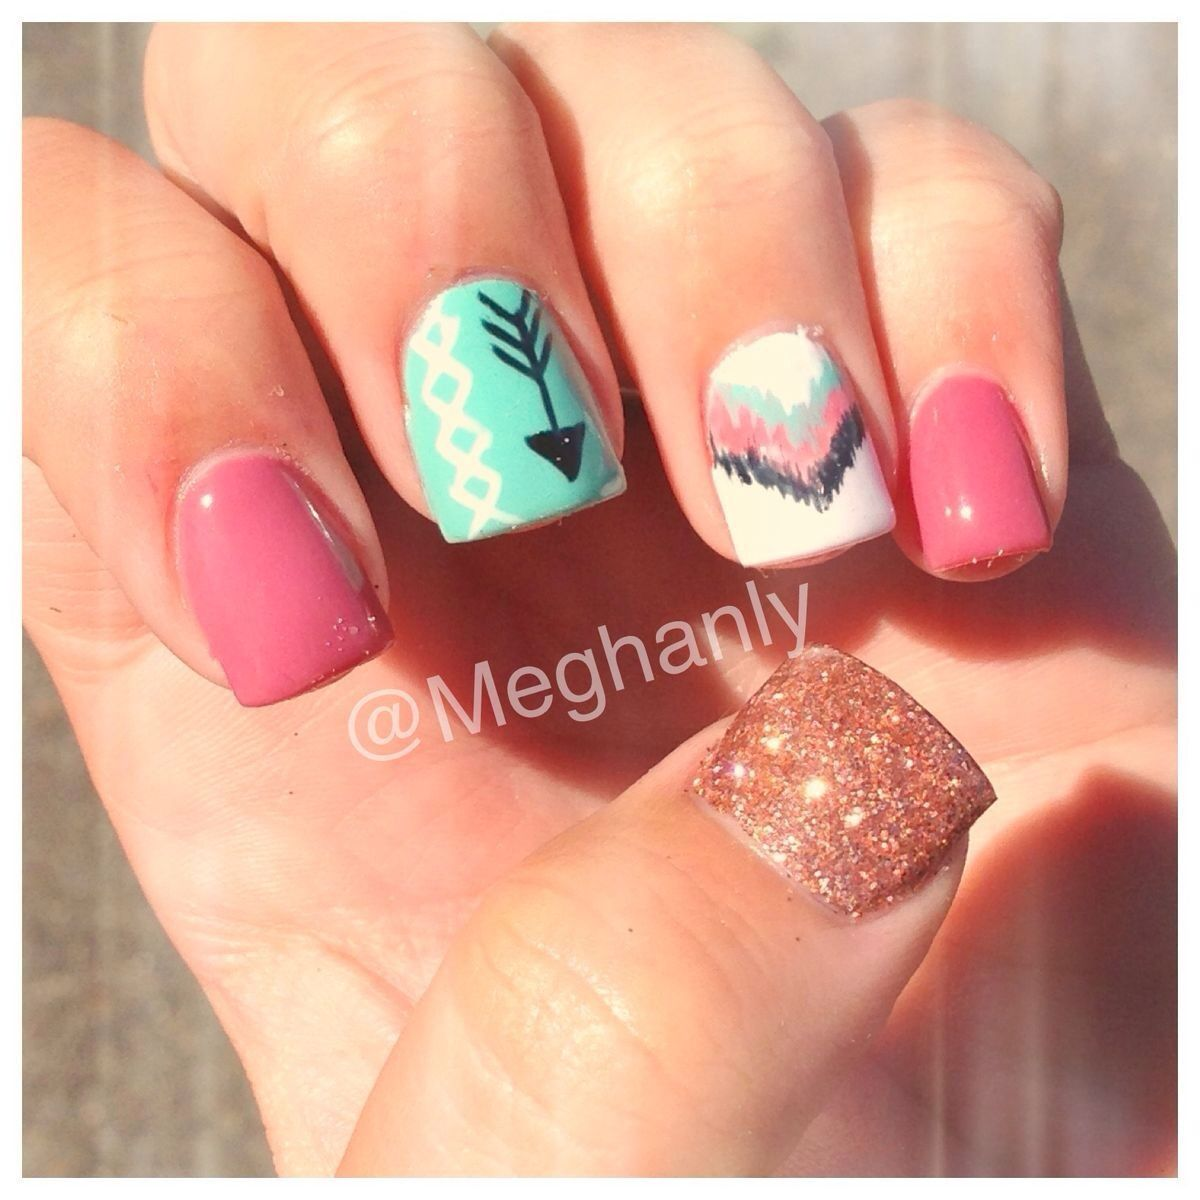 Adorable Nail Art: Cute Nails Nail Art Ideas Nail Design Summer Nails